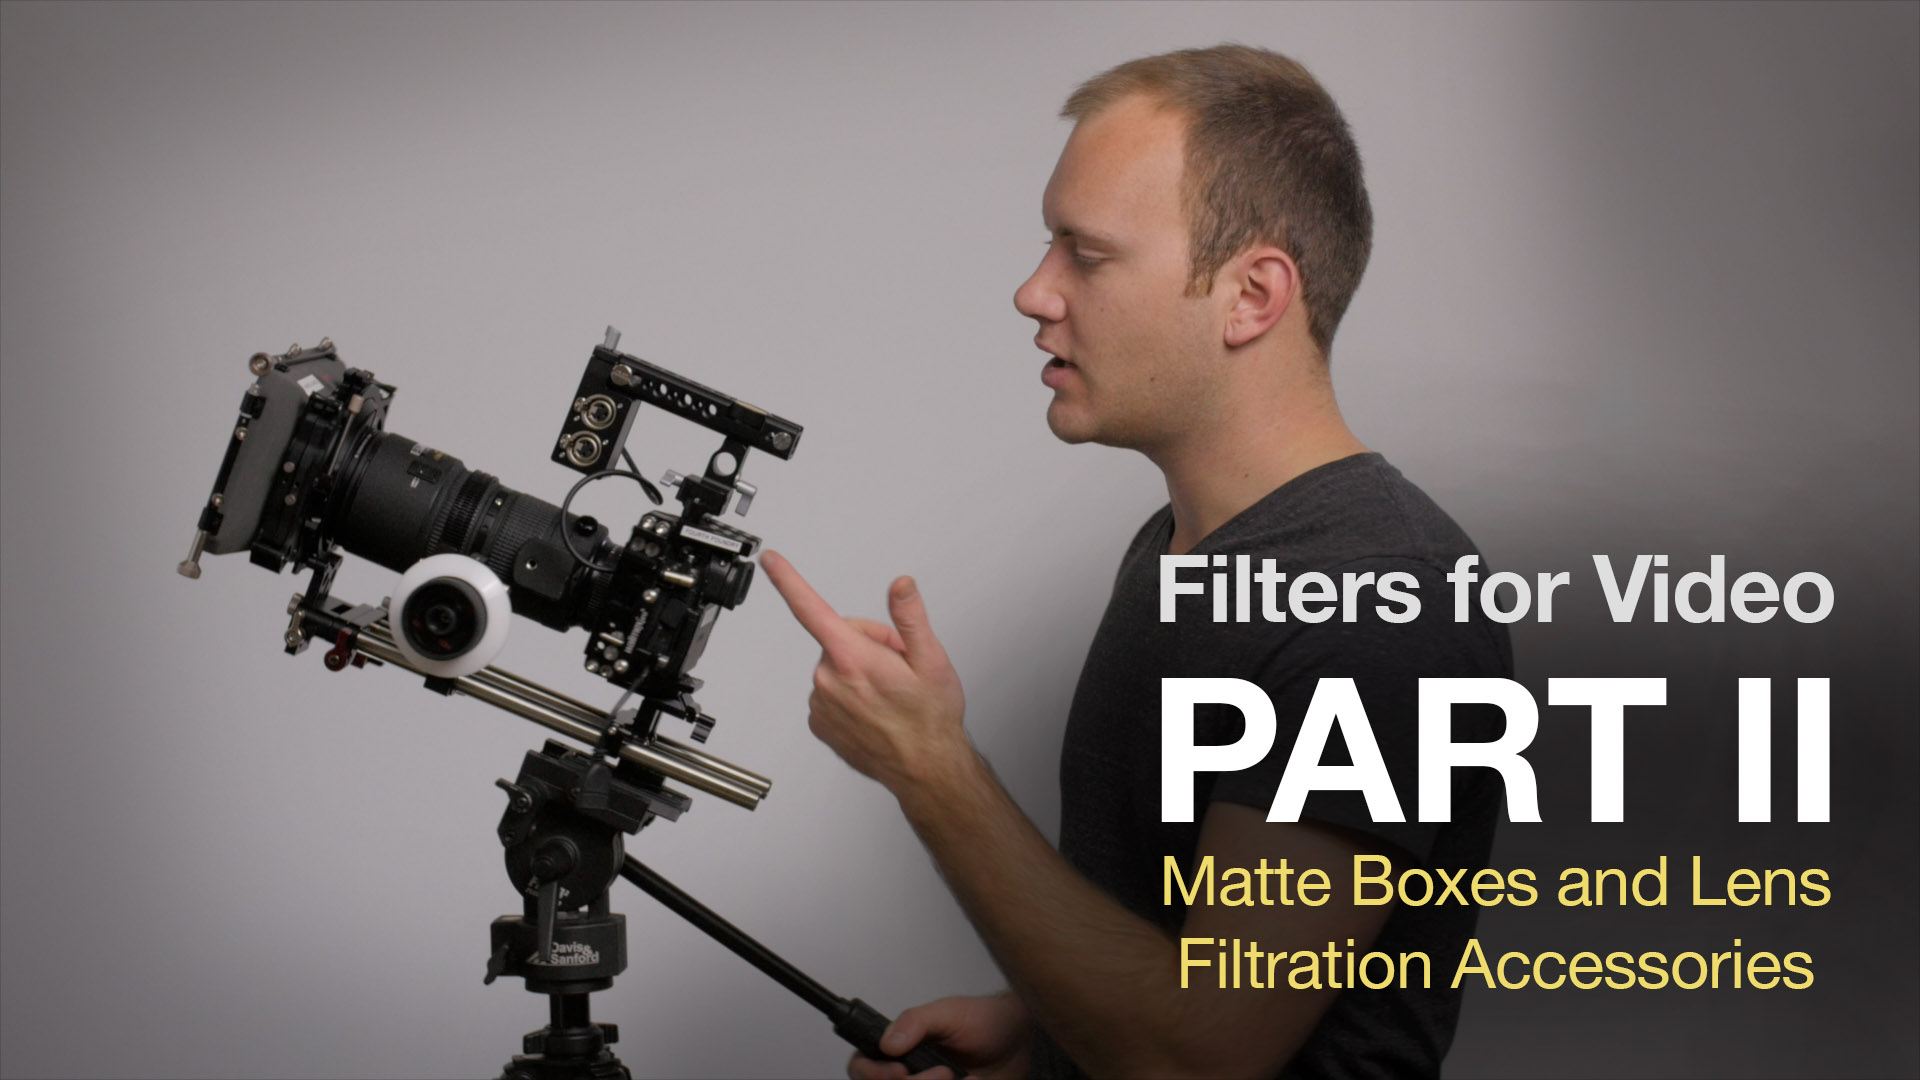 Filters for Video Part II: Matte Boxes and Lens Accessories